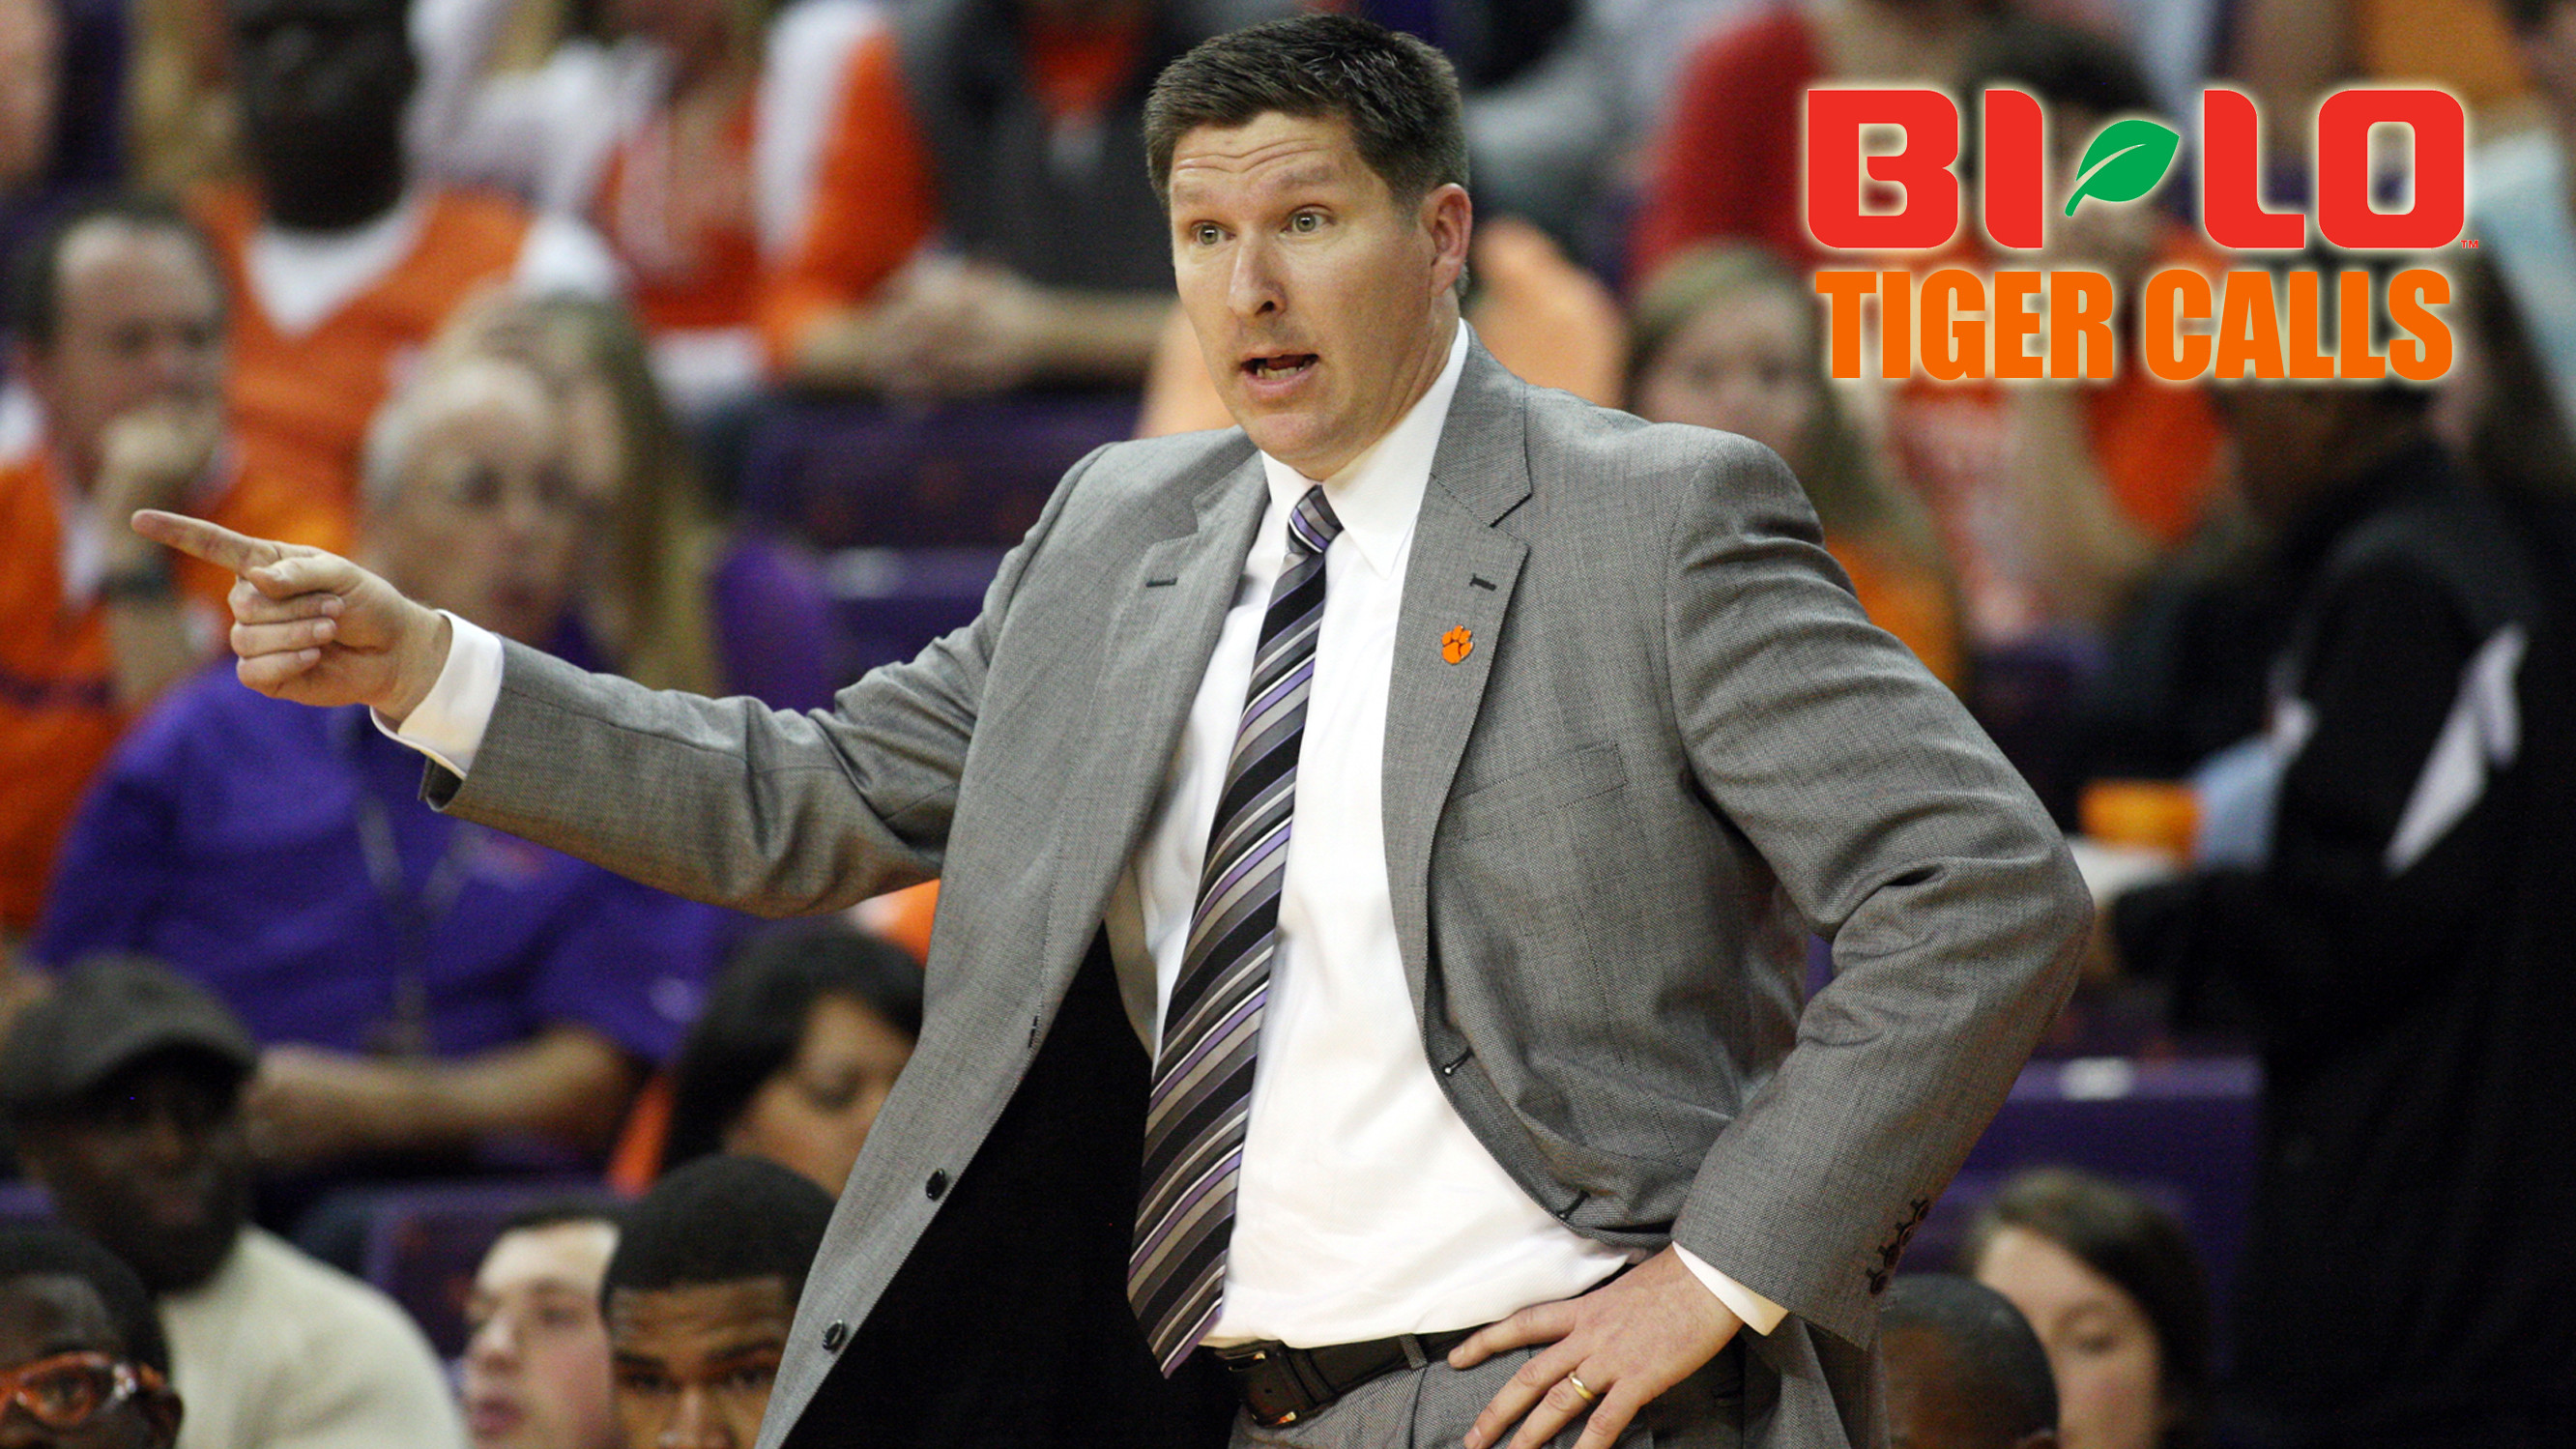 Clemson Tiger Sports Properties Announces 2013-14 BI-LO Tiger Calls Schedule for Men's Basketball